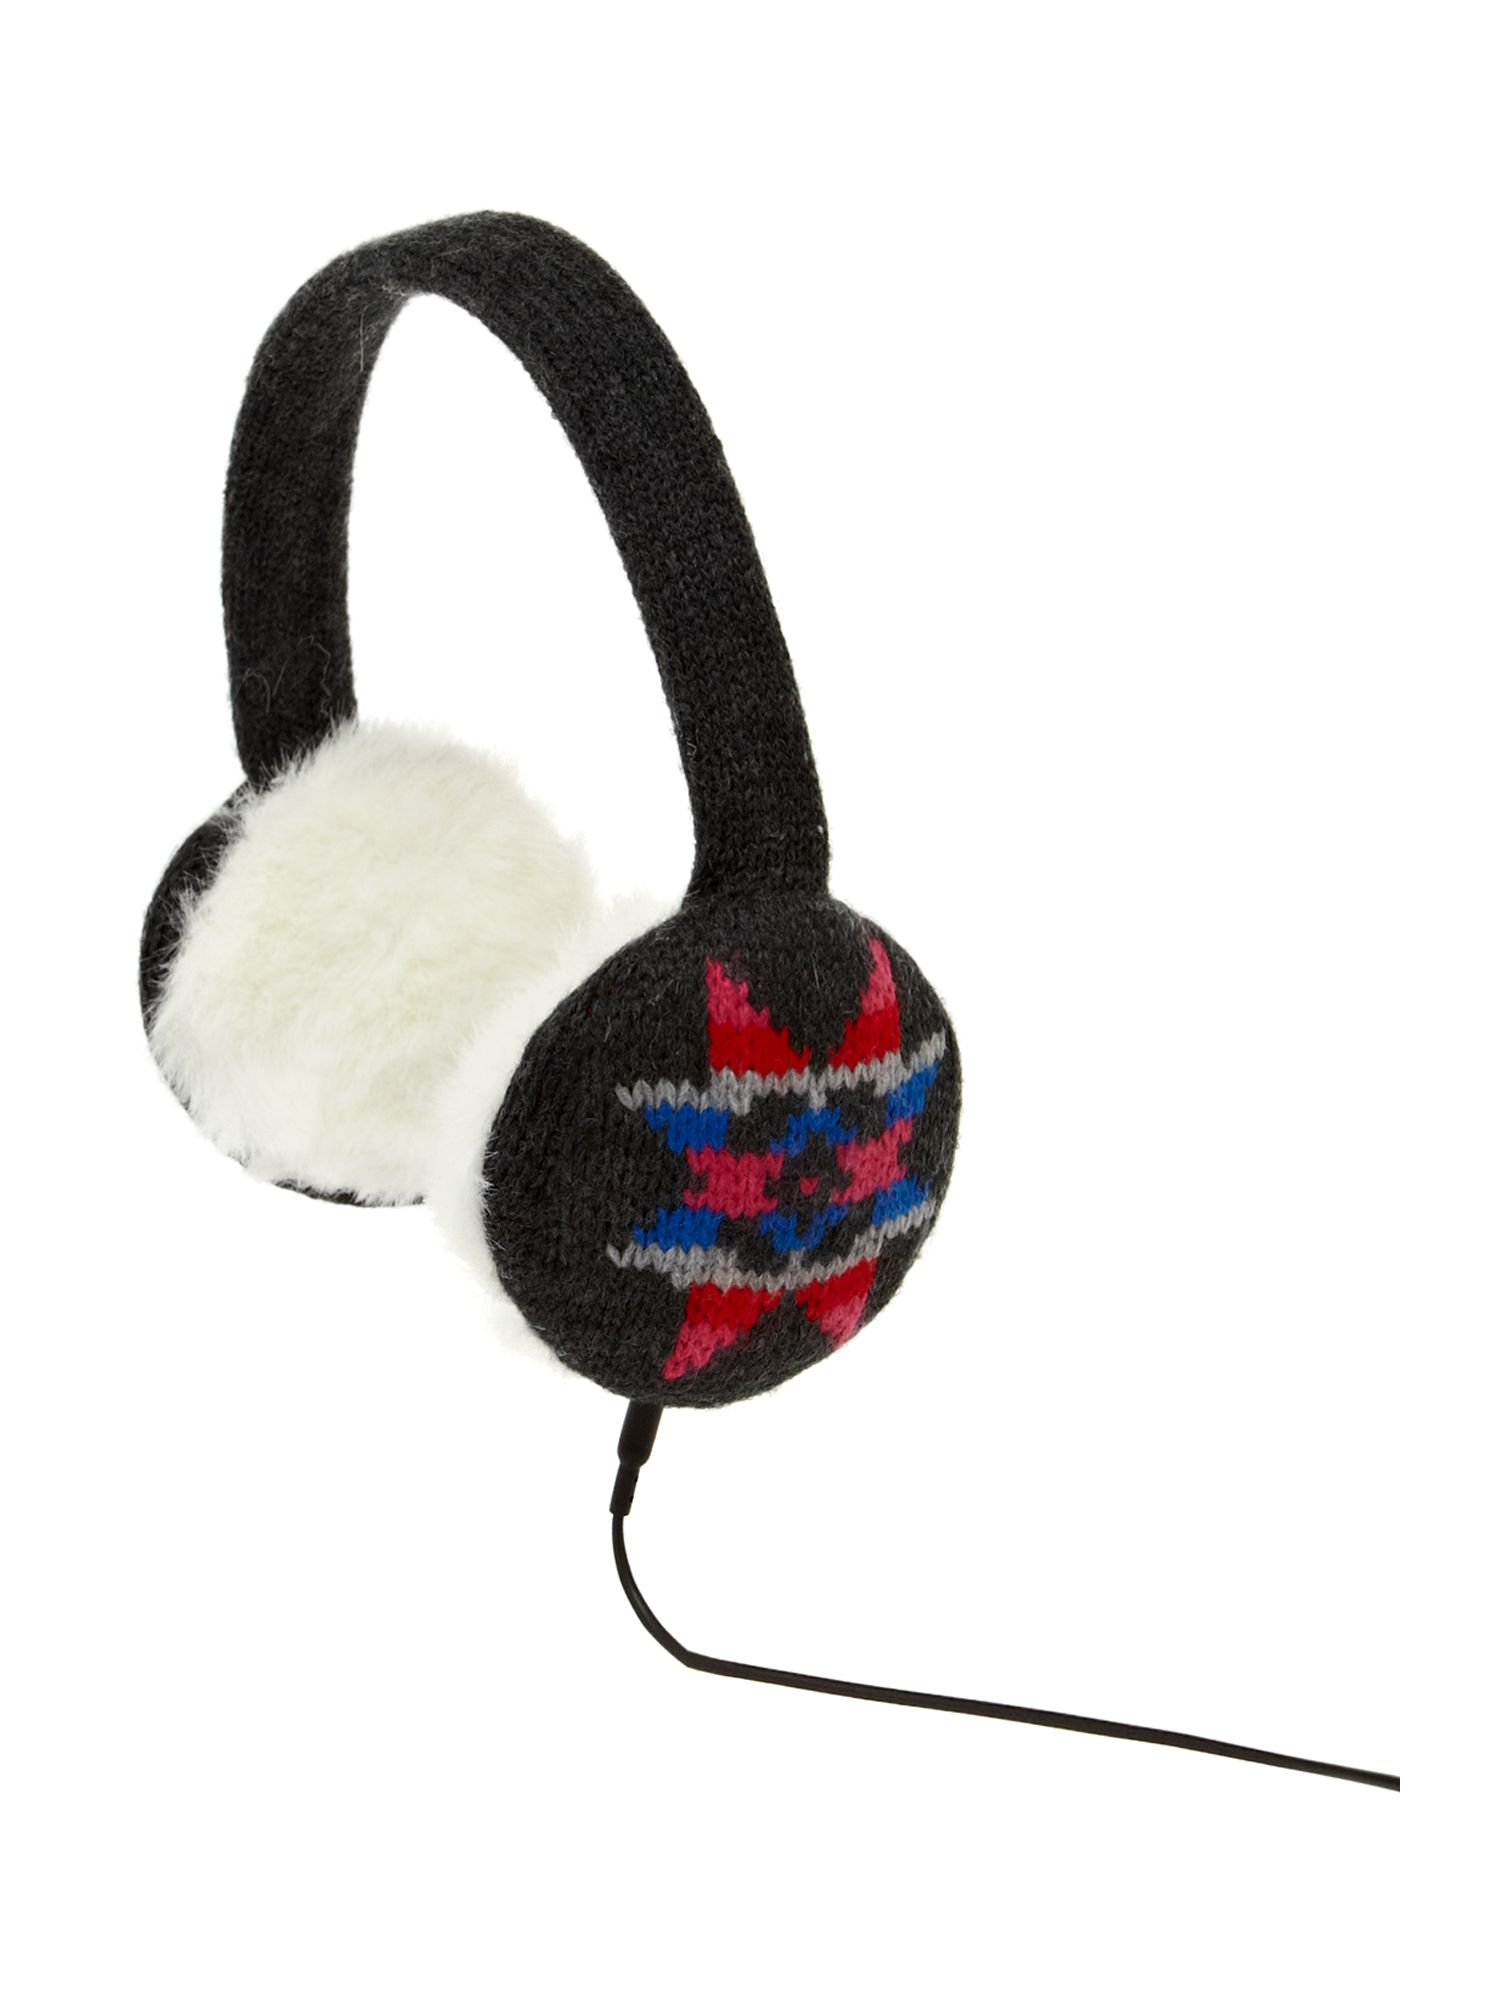 Snowflake knit headphones